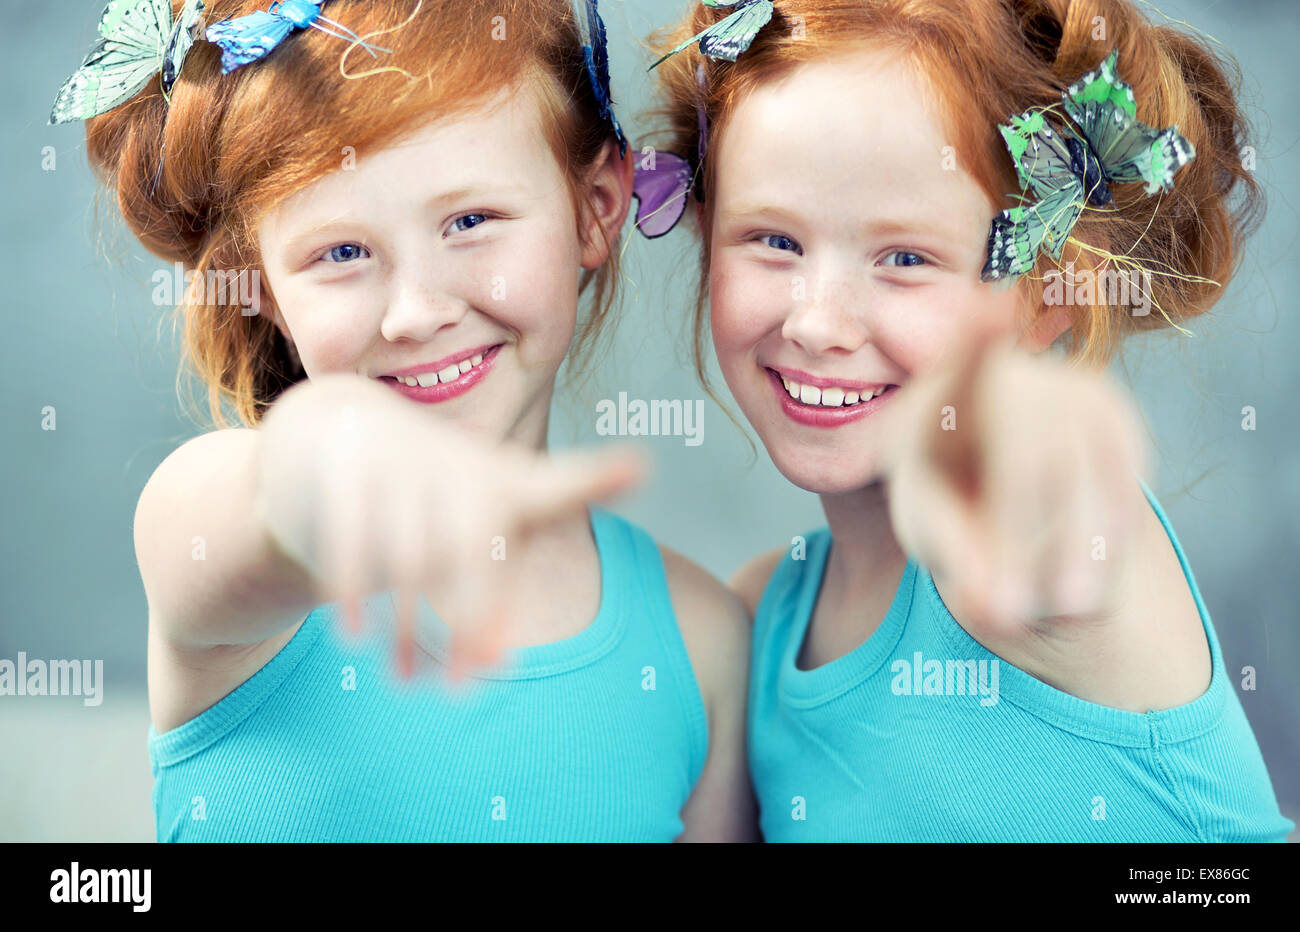 Portrait of two cheerful redhead twin sisters - Stock Image